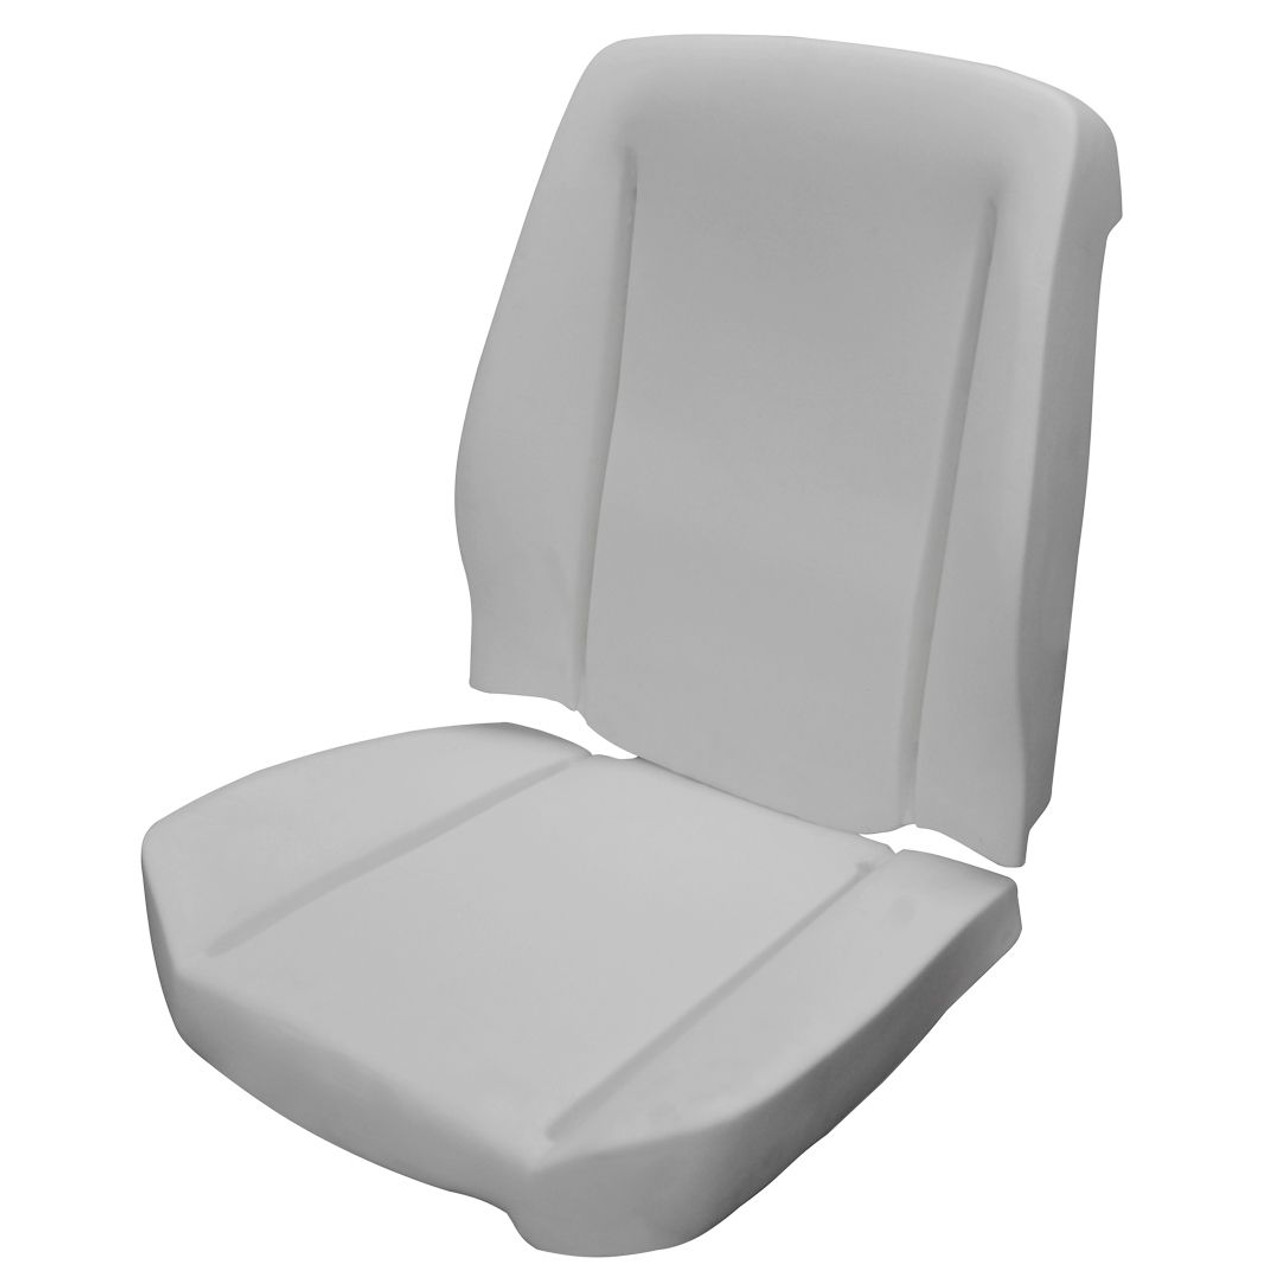 1966-72 Bucket Seat Foam for TMI Seats, 1 seat